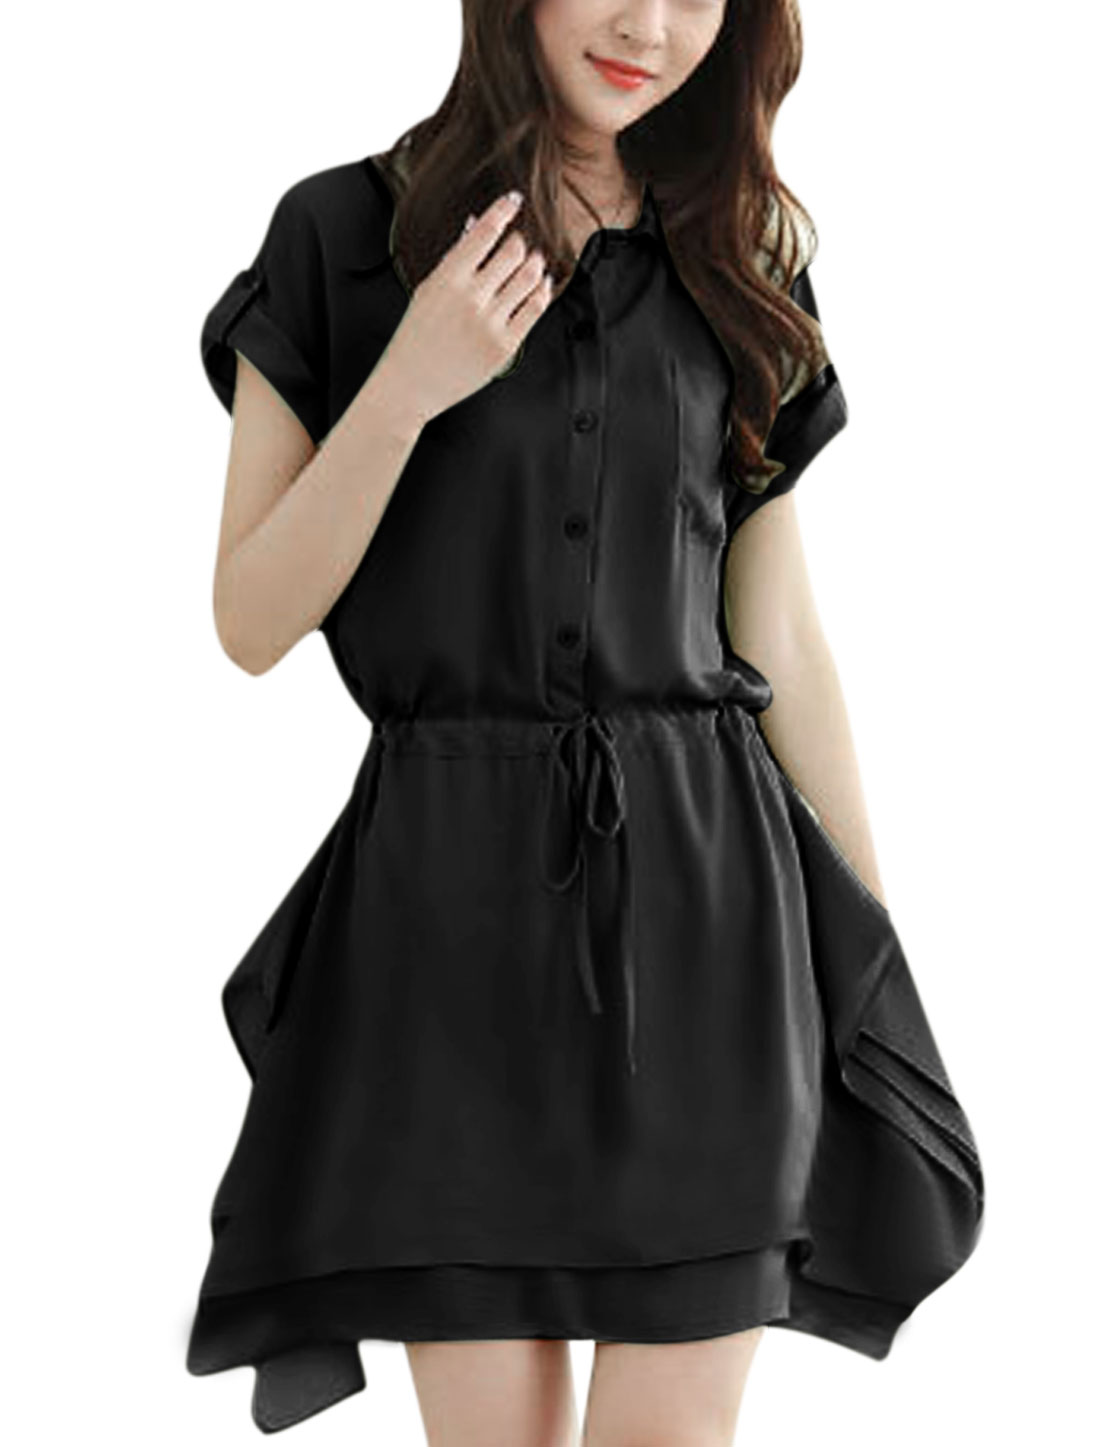 Lady 1/2 Placket Drawcord Waist Tiered Irregular Hem Shirt Dress Black S